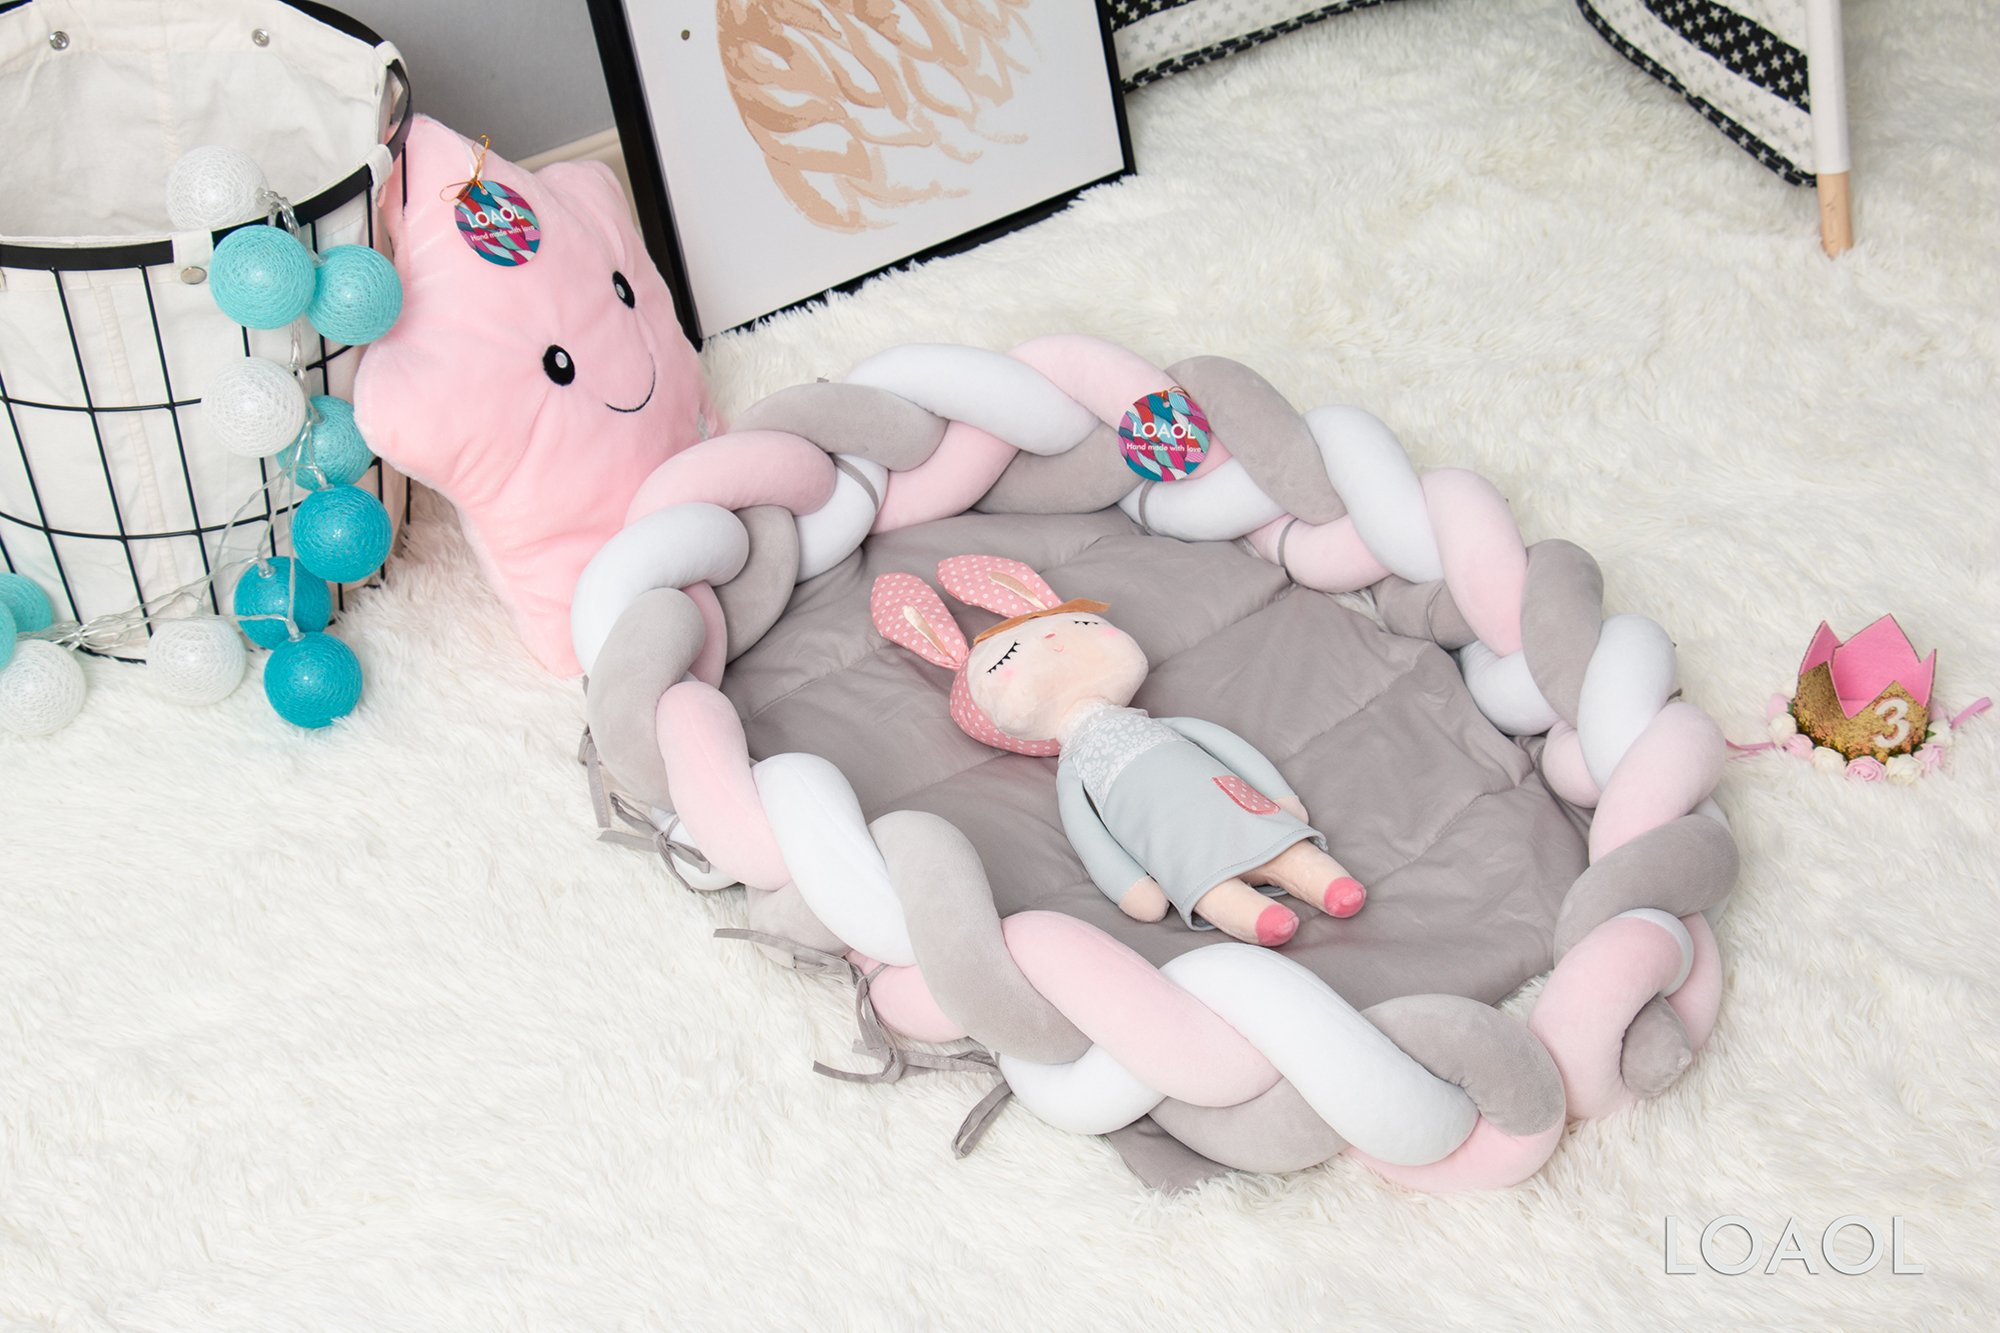 LOAOL Baby Crib Nest Bed Newborn Lounger Sleeper Knotted Braided Infant Nursery Decor Cradle Bumper (White-Gray-Pink, 17.7'' x 23.6'') by LOAOL (Image #4)